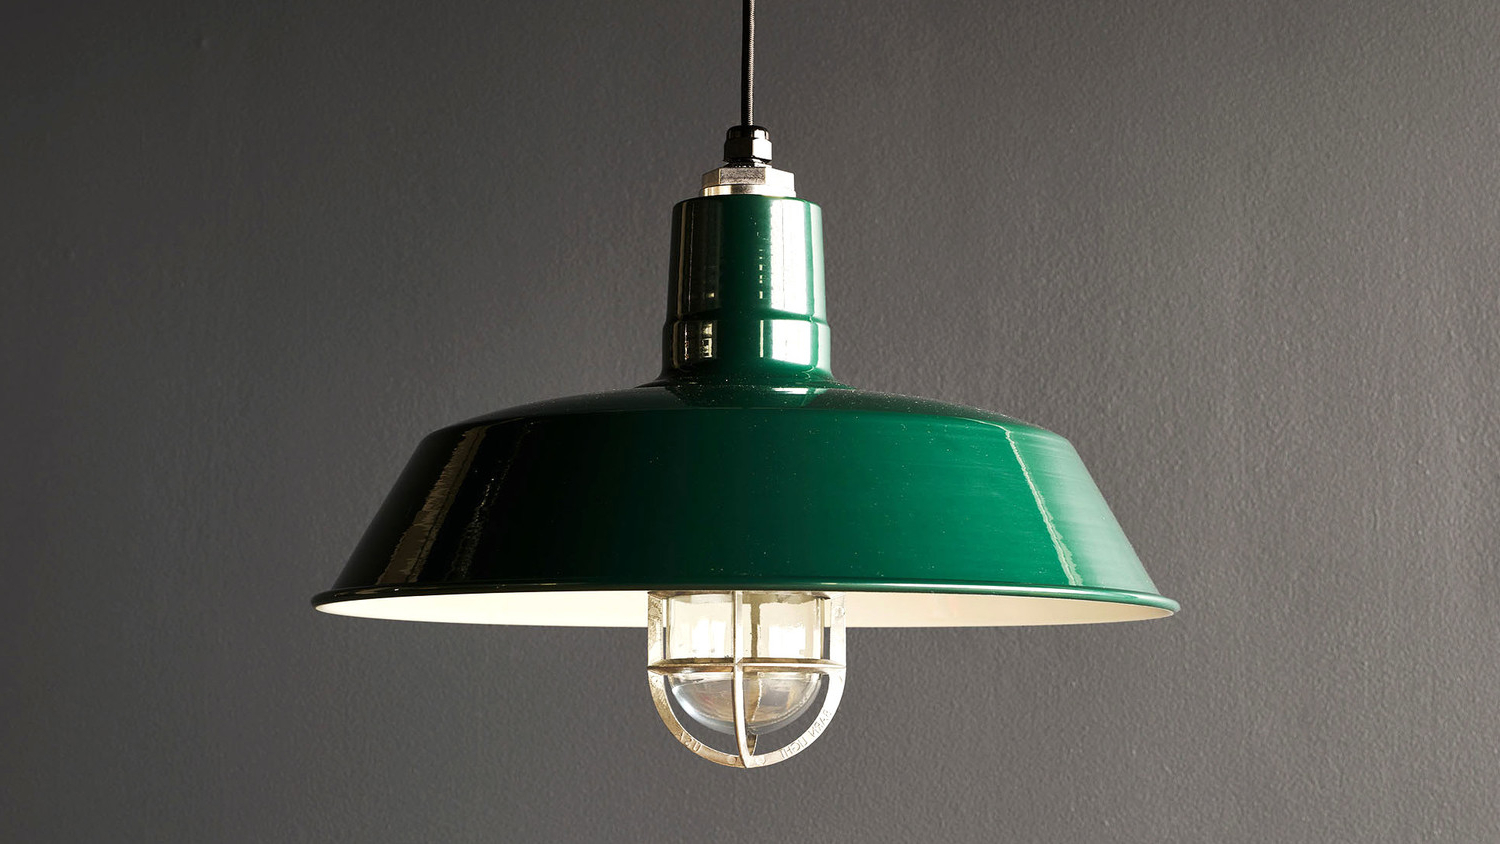 Shopping Special: Trent Austin Design Irwin 1 Light Single Regarding Recent Irwin 1 Light Single Globe Pendants (View 18 of 20)